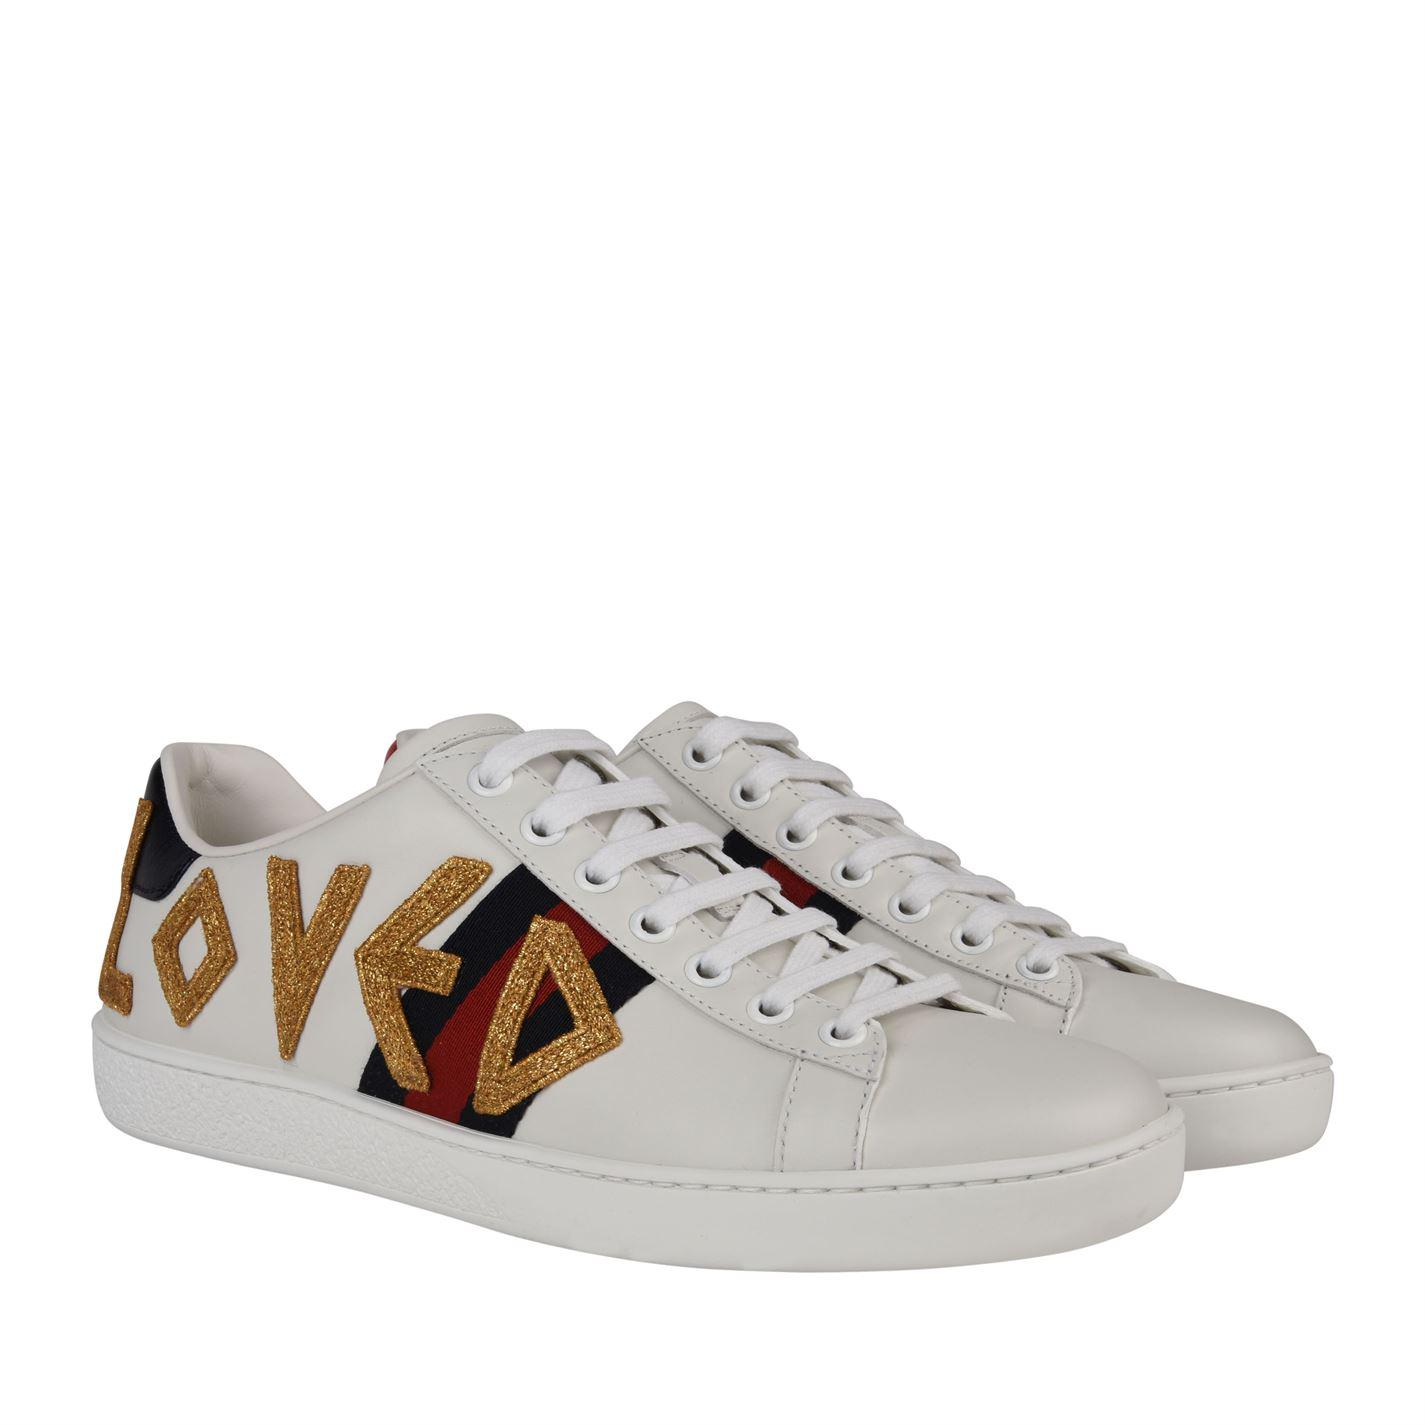 Gucci Leather Loved Webbed Trainers in